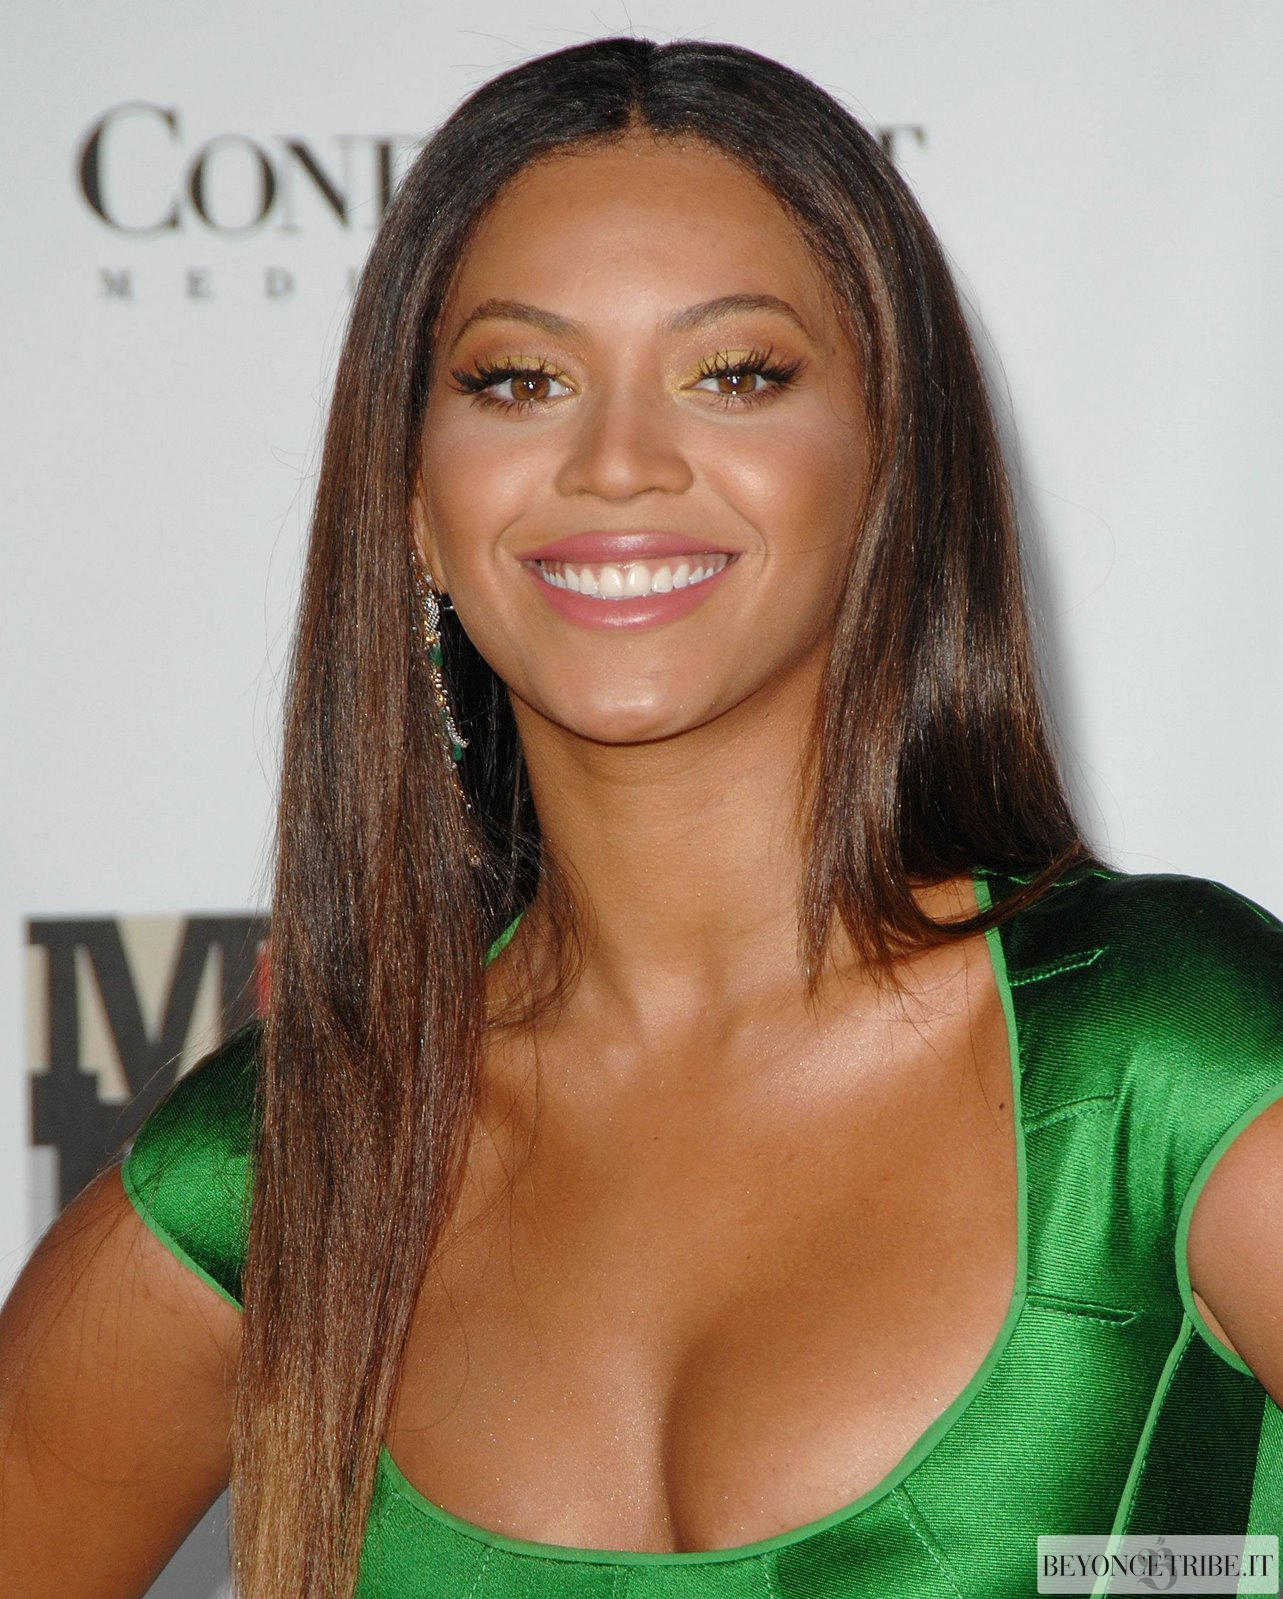 Beyoncé red carpet  Movies Rock 2 Dic 2007